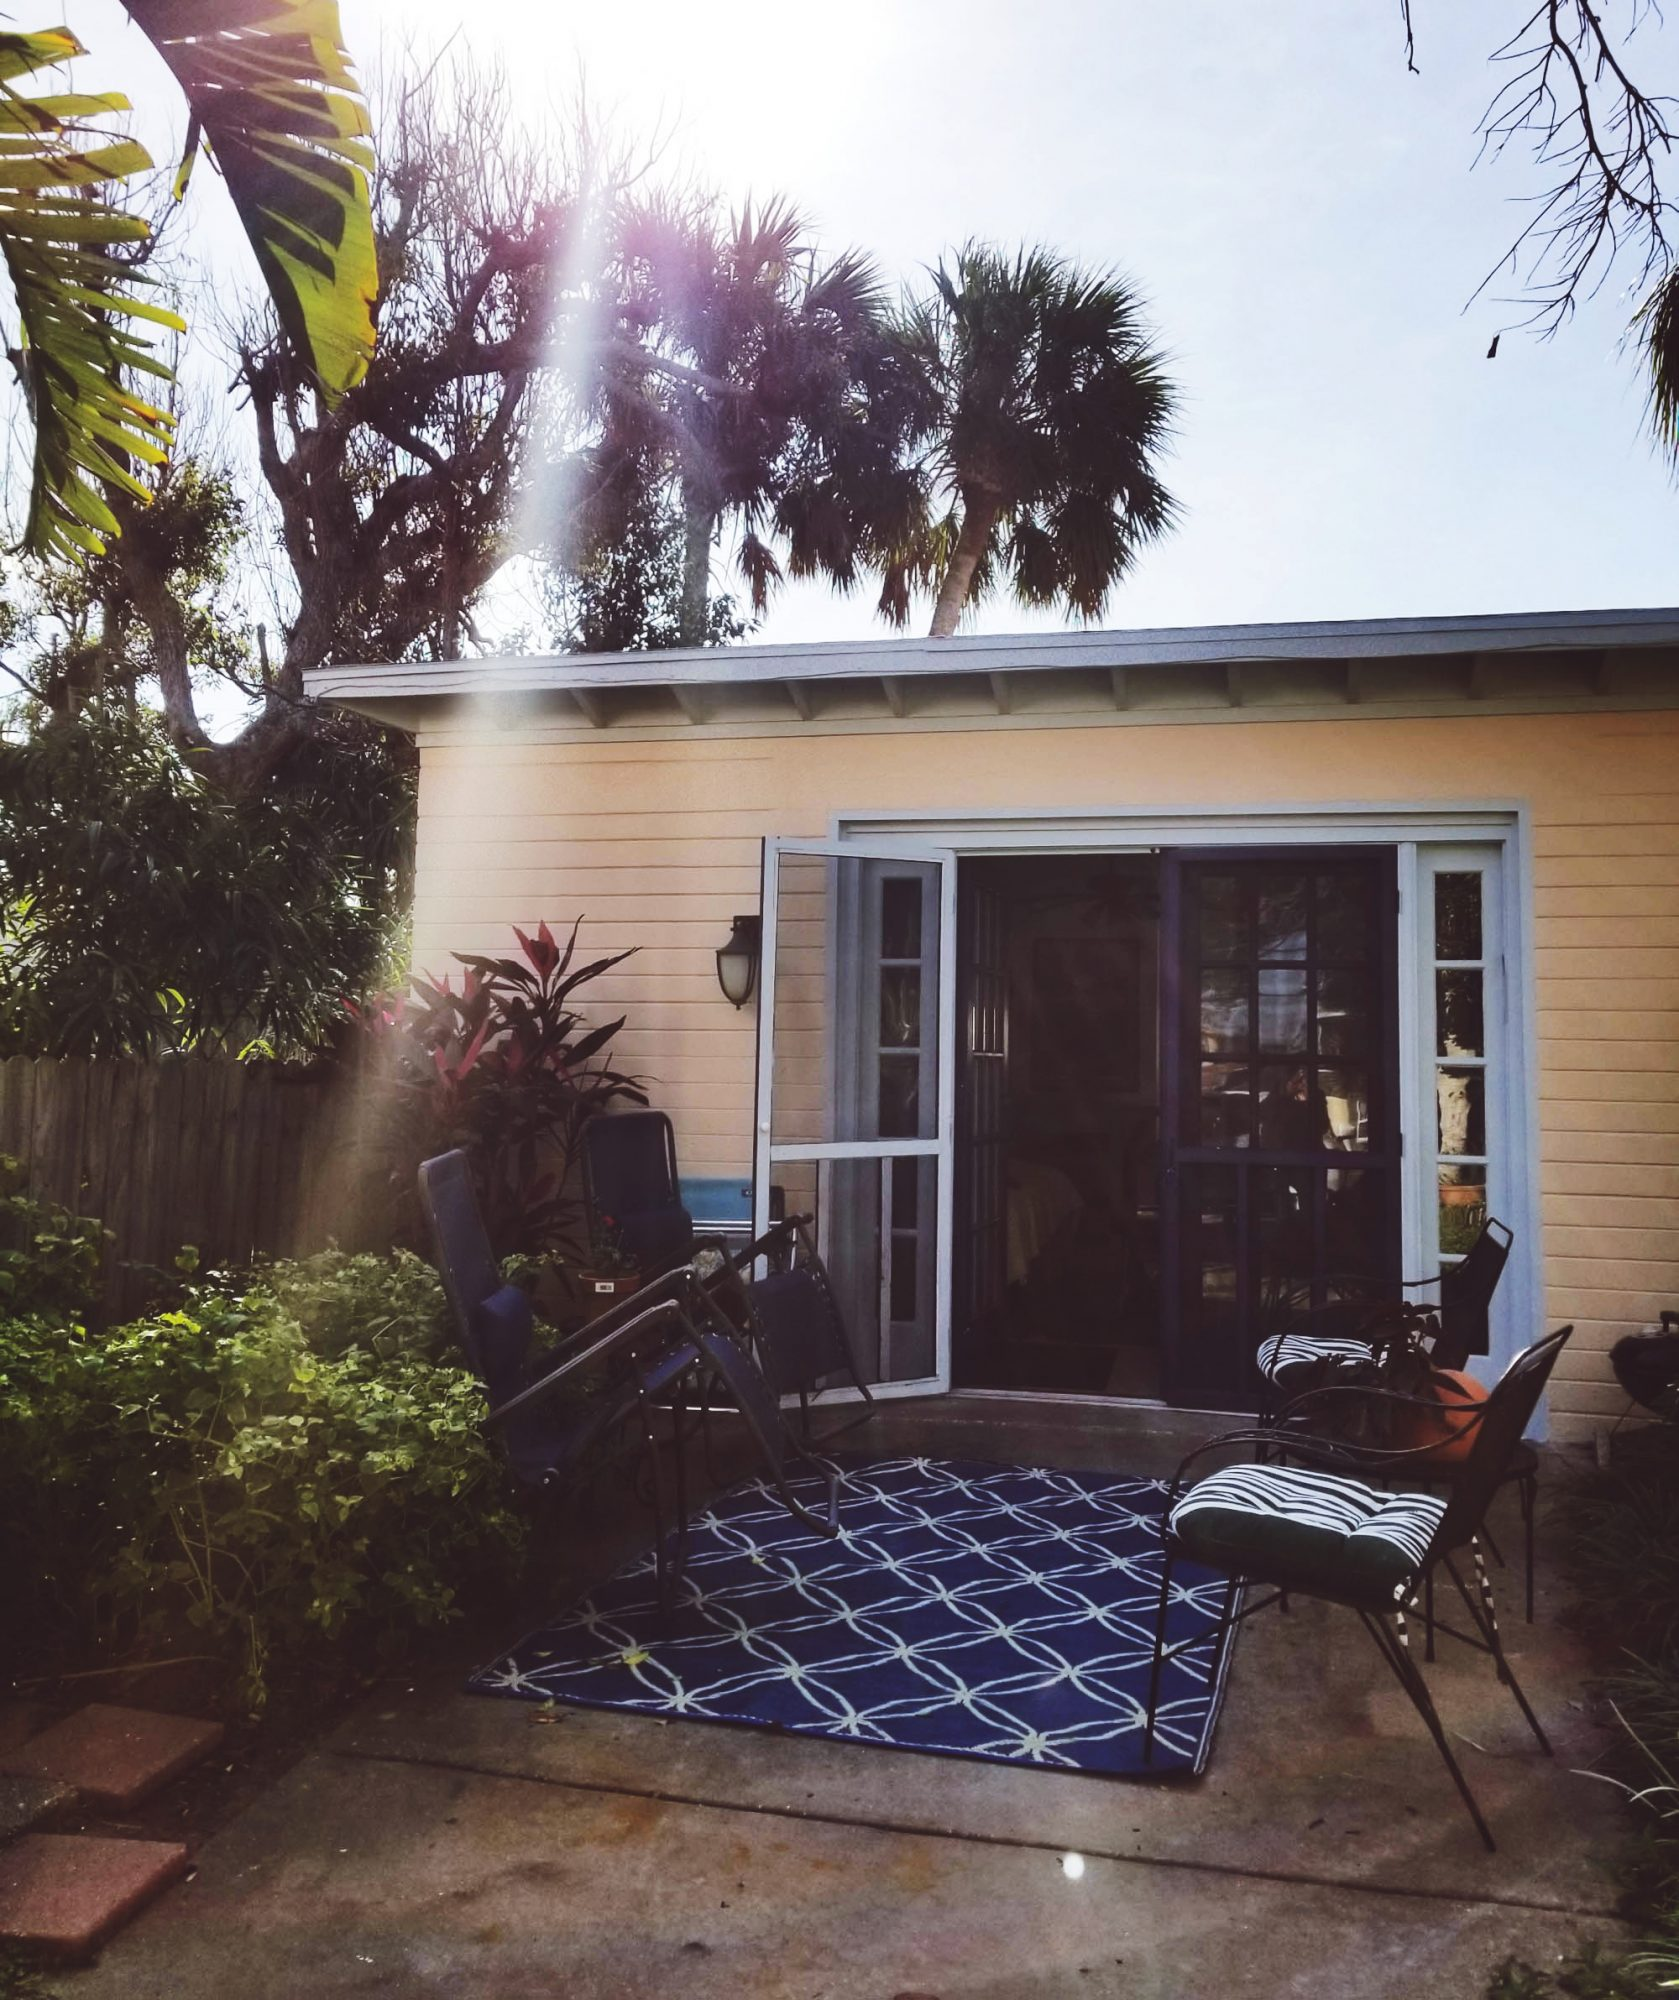 Boho Beautiful Airbnb Florida Daytona